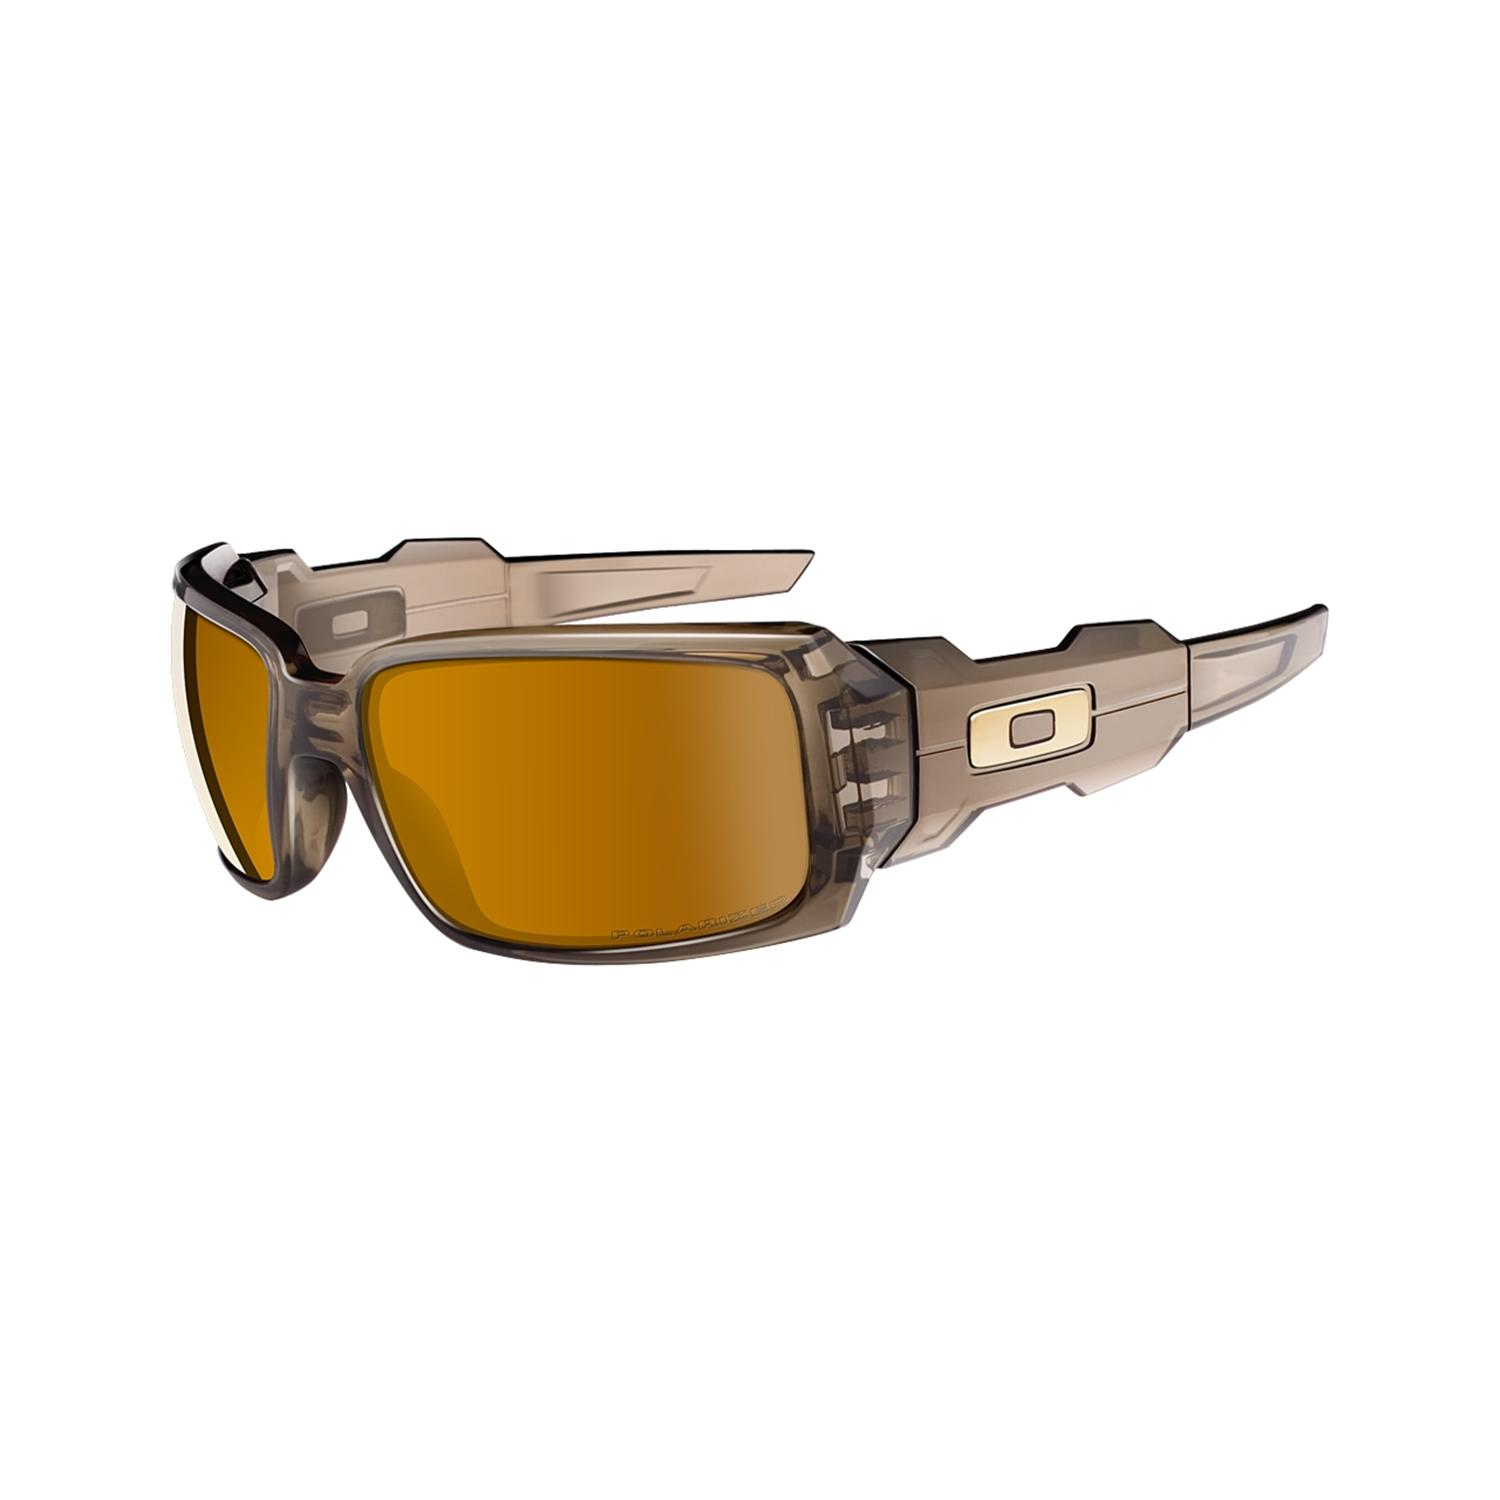 Clearance Oakley Sunglasses Uxar